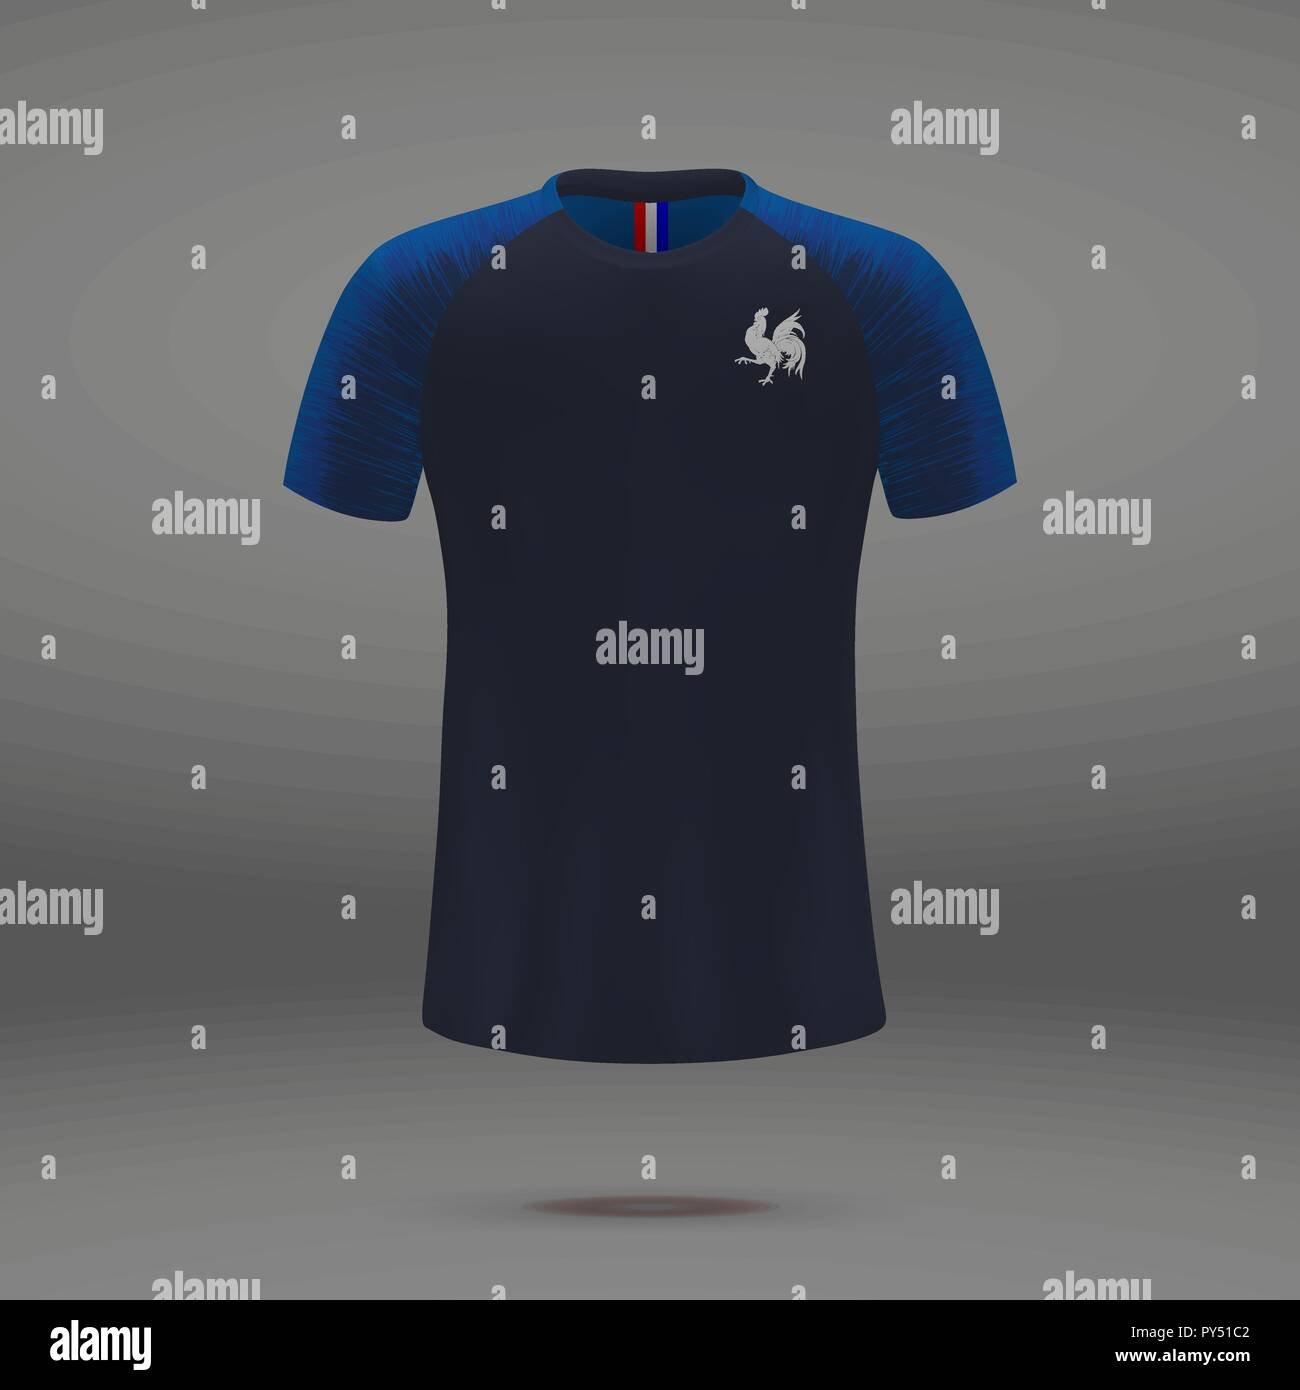 100% authentic df701 95e50 football kit of France 2018, t-shirt template for soccer ...